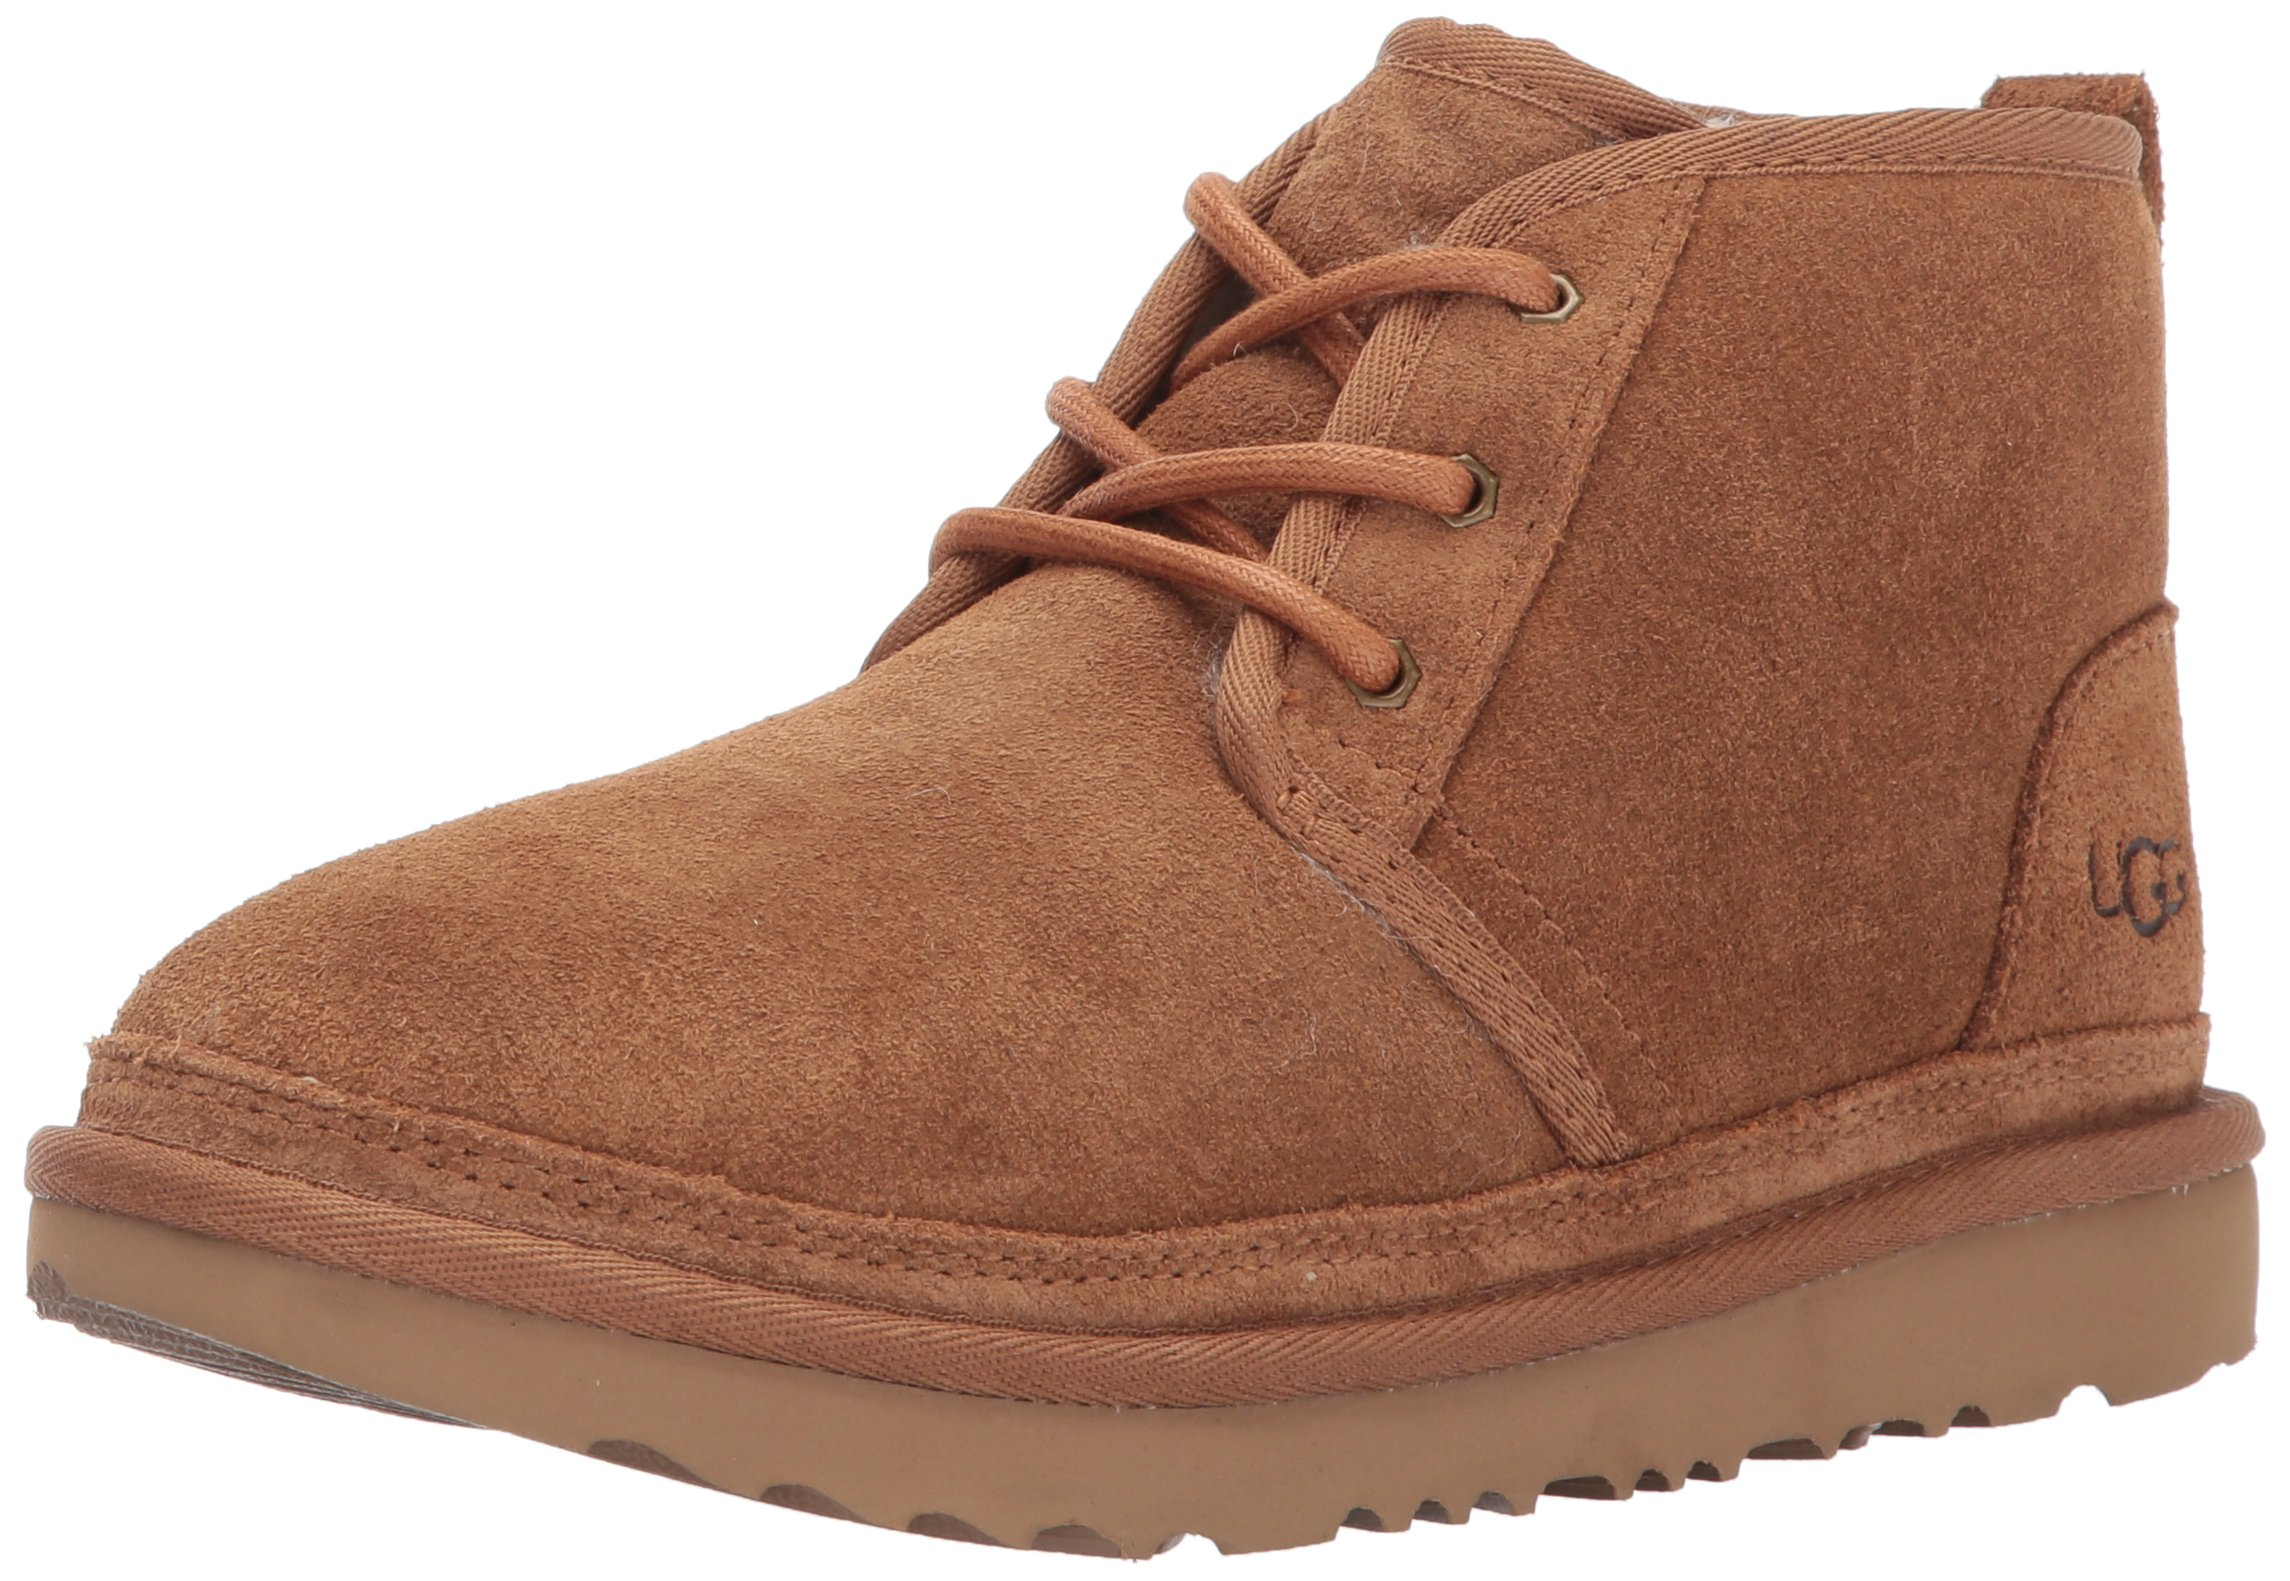 UGG Kids K Neumel II Chukka Boot, Chestnut, 6 M US Big Kid by UGG